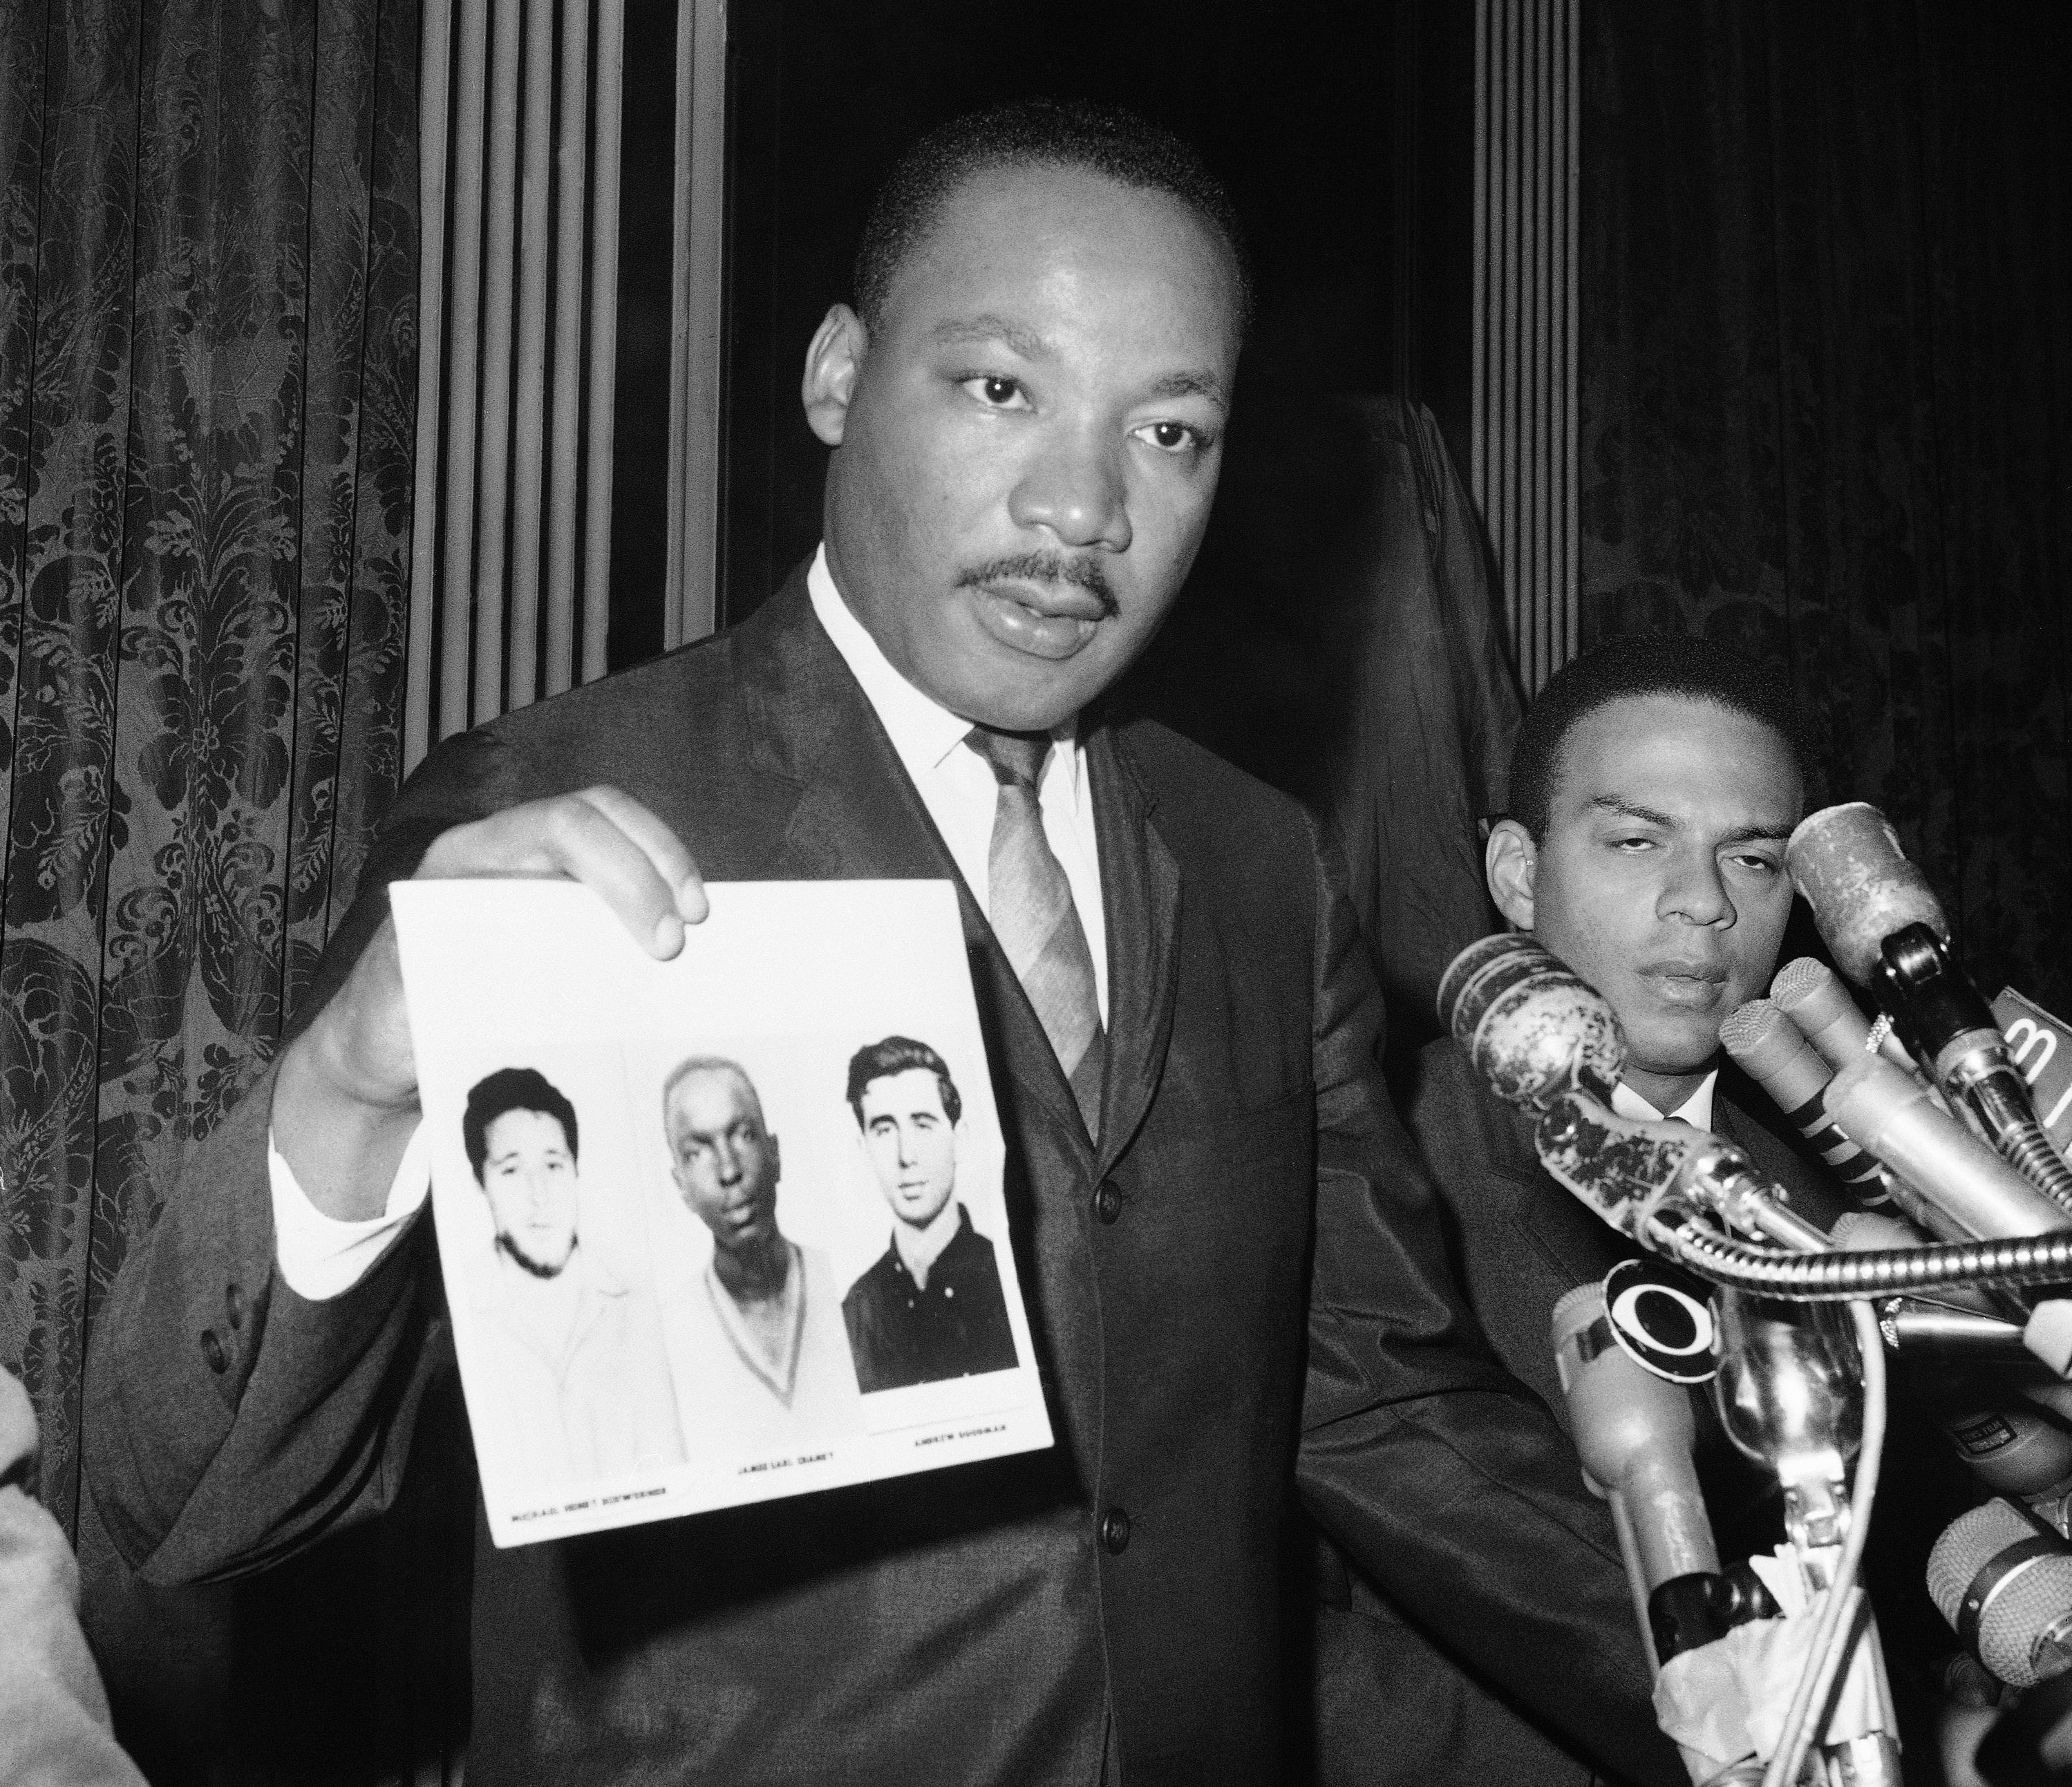 In this Dec. 4, 1964, file photo civil rights leader Martin Luther King Jr. displays pictures of three civil rights workers, who were slain in Mississippi the summer before, from left, Michael Schwerner, James Chaney and Andrew Goodman, at a news conference in New York, where he commended the FBI for its arrests in Mississippi in connection with the slayings.